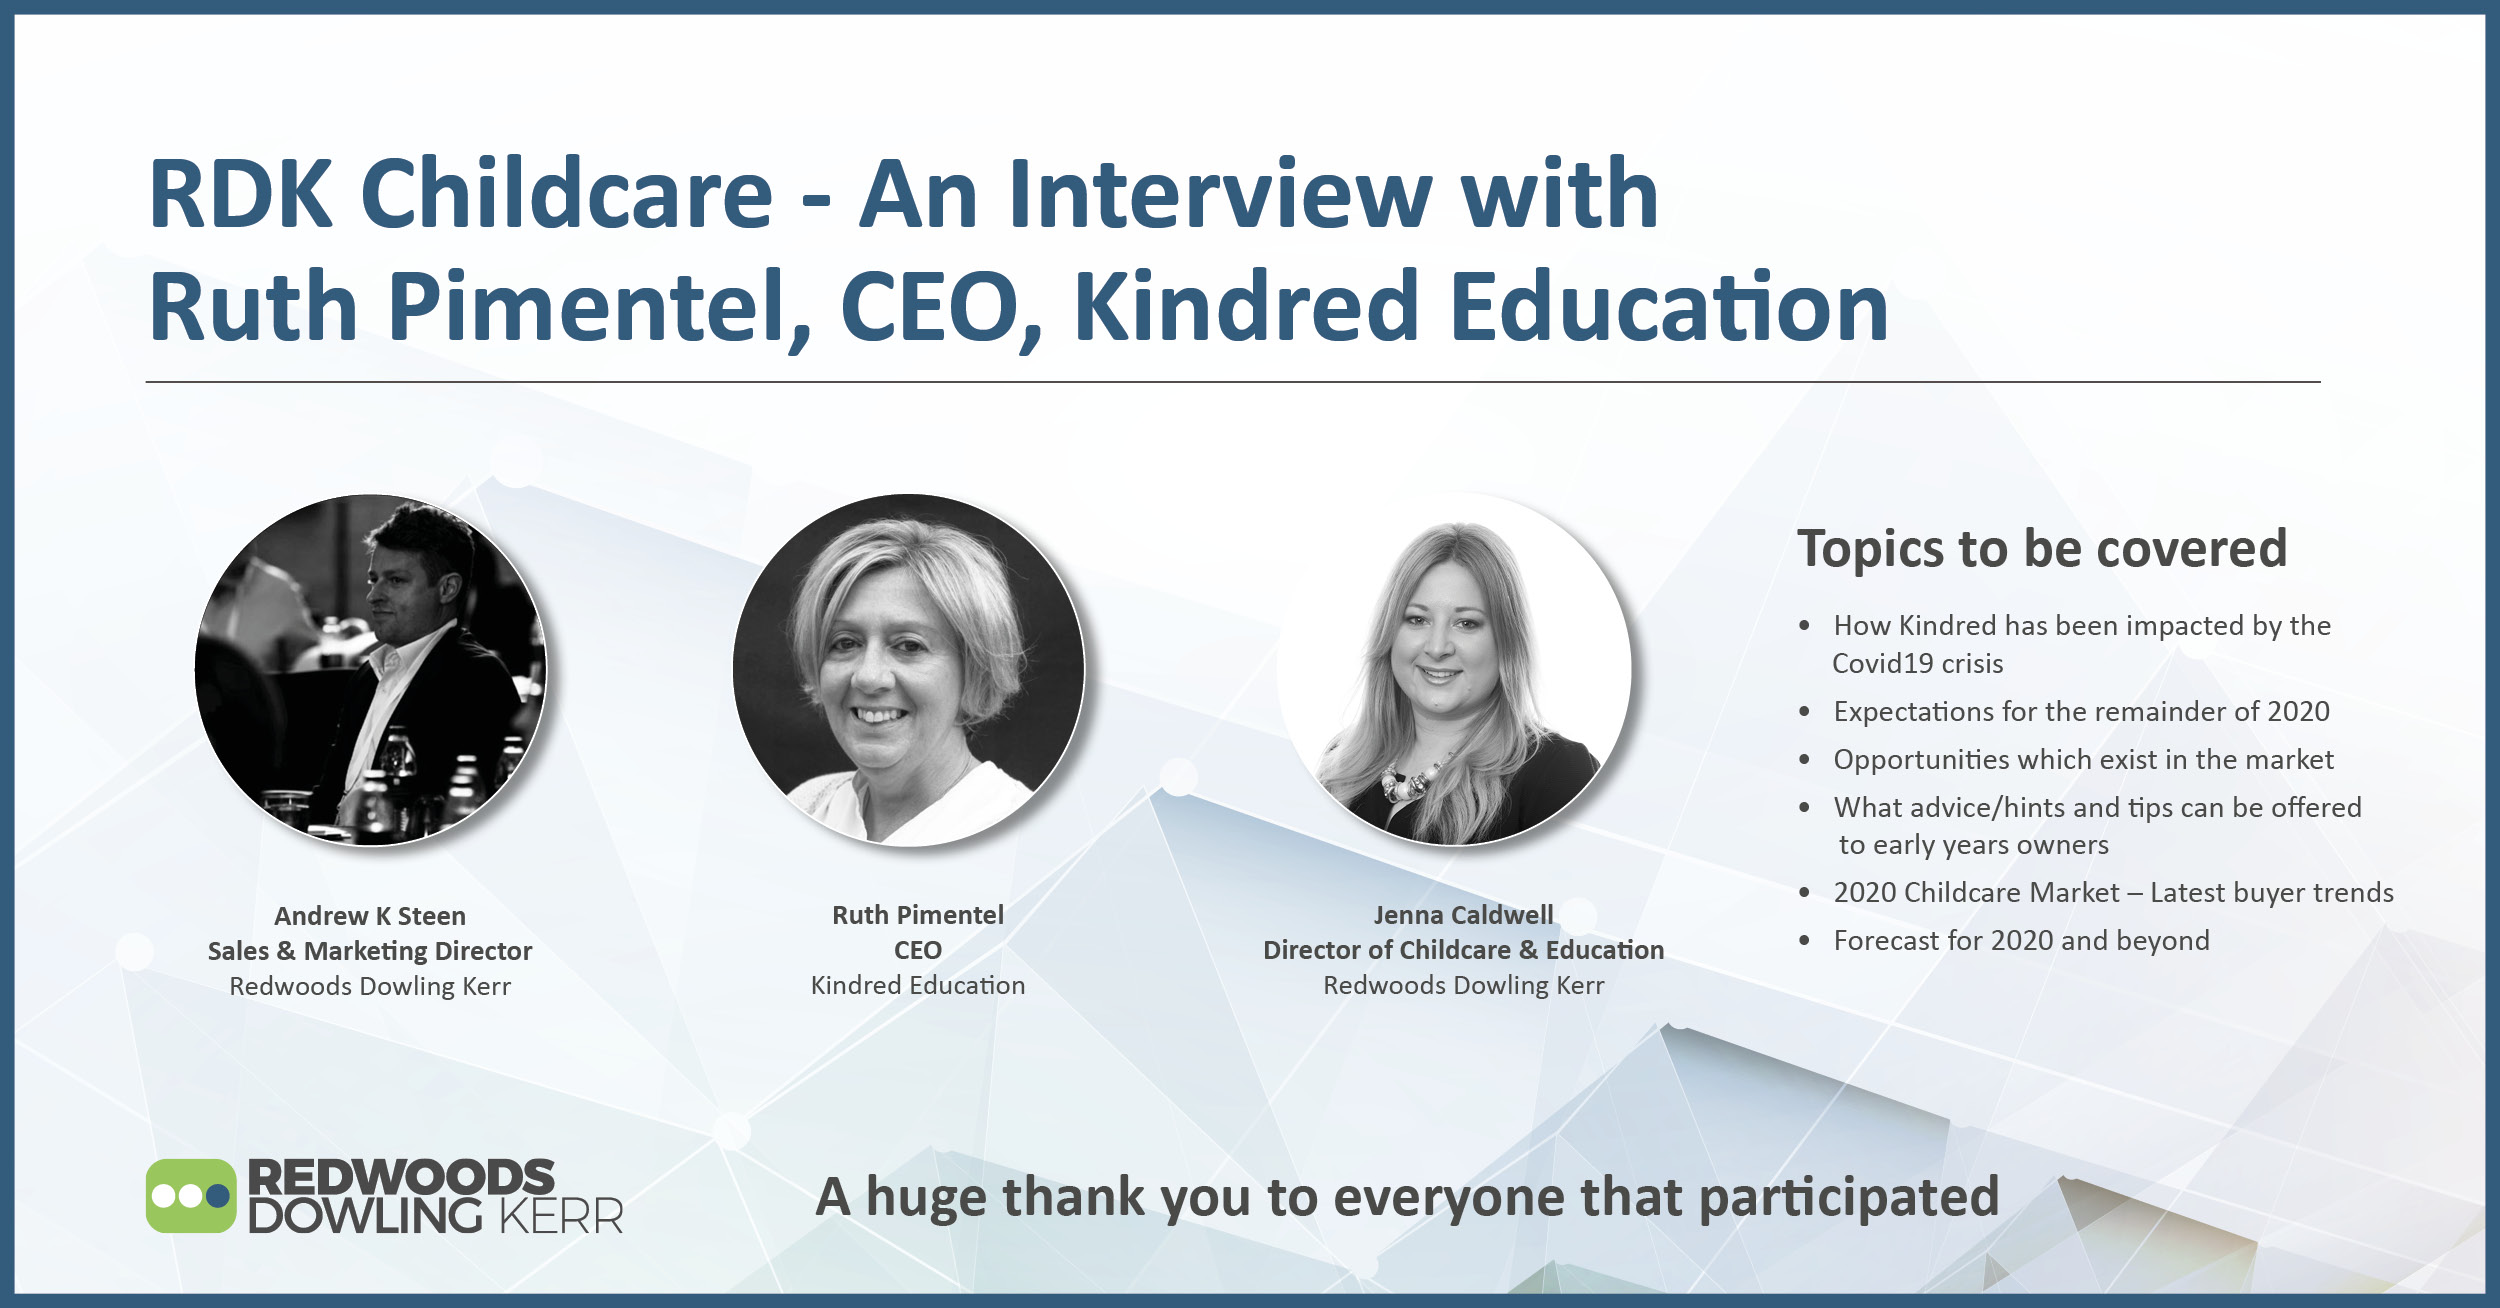 RDK Childcare – An Interview with Ruth Pimentel, CEO, Kindred Education